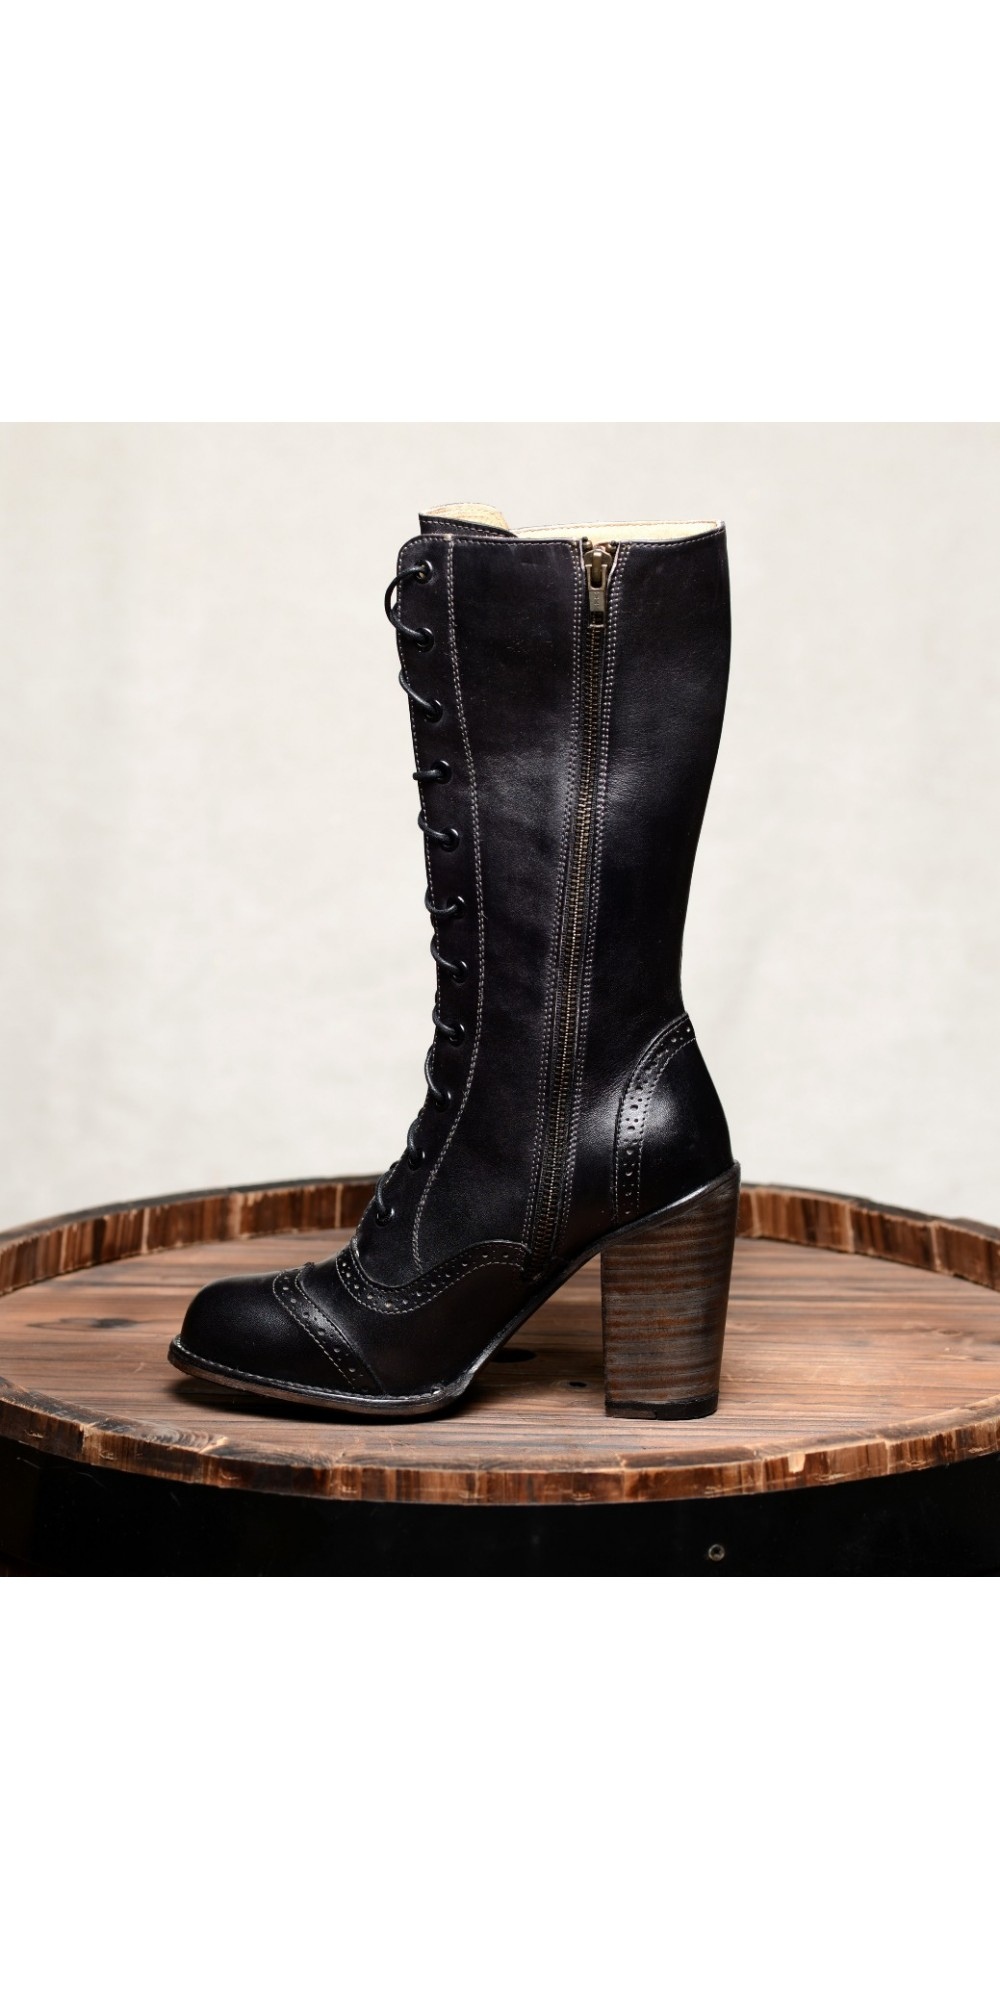 21751b3b5c46 ... Victorian Inspired Mid-Calf Leather Boots in Black Rustic by Oak Tree  Farms ...